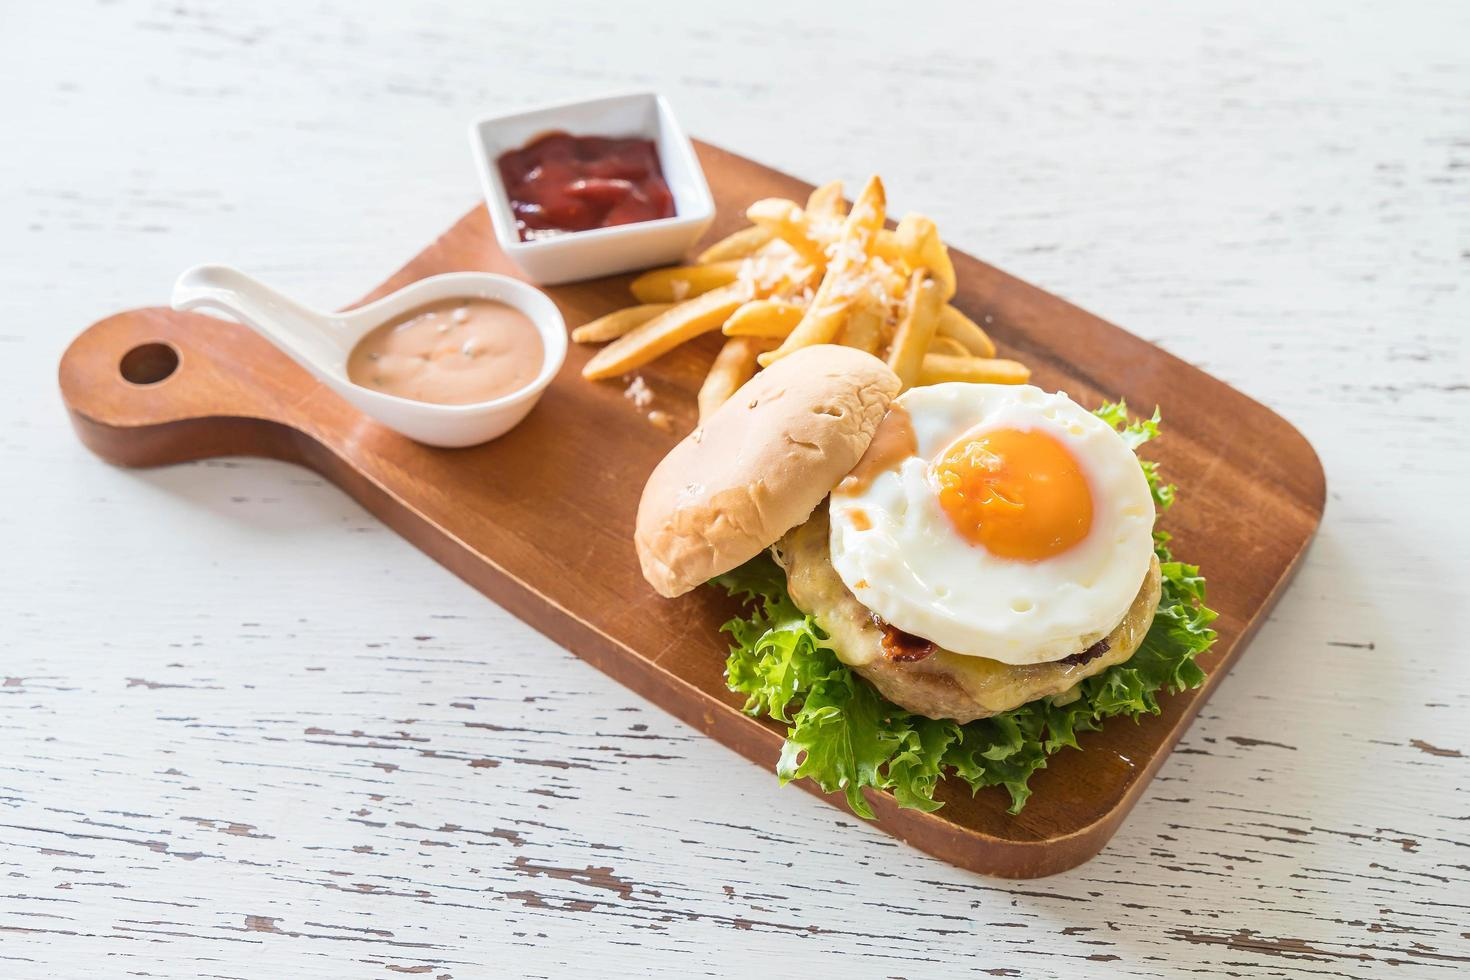 Hamburger with an egg on it photo